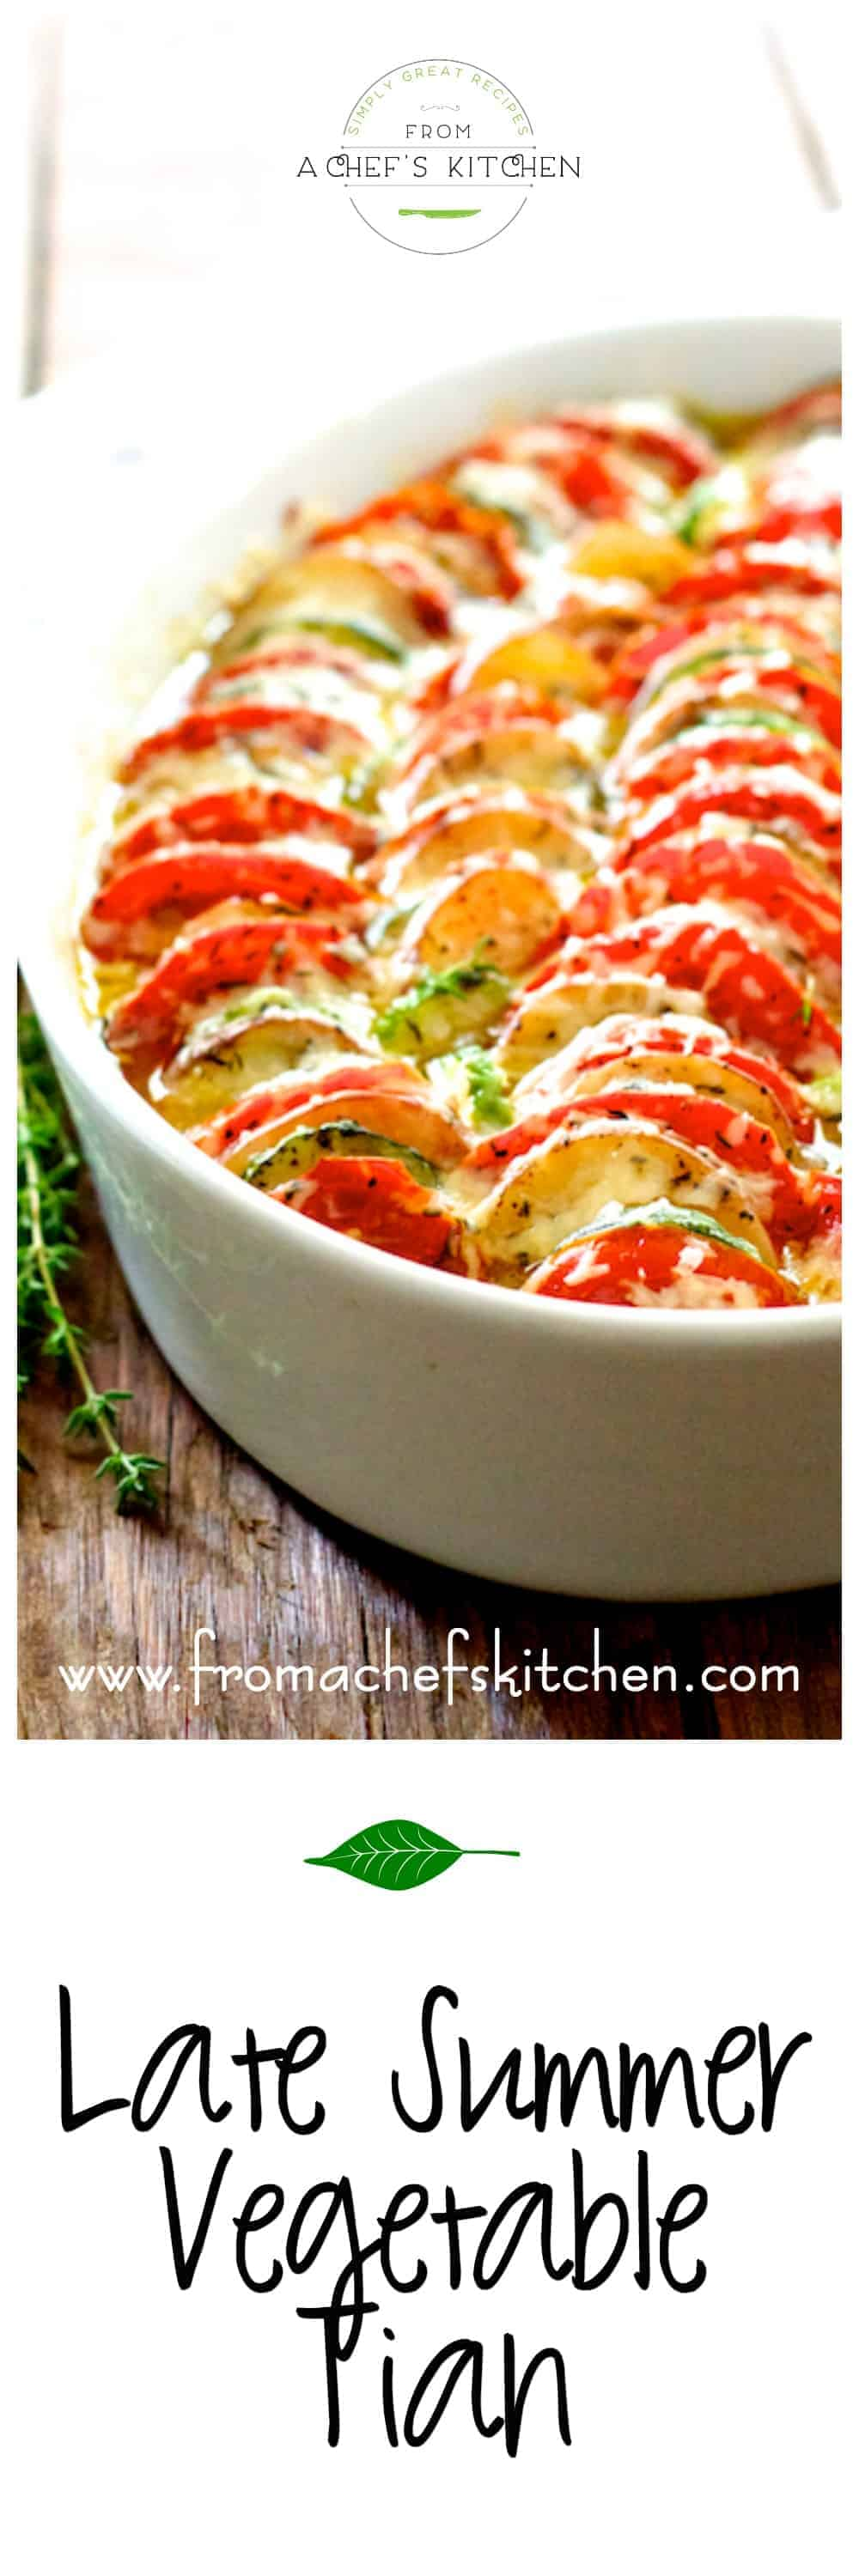 Late Summer Vegetable Tian with tomatoes, zucchini and potatoes is a beautiful Provencal-inspired dish!